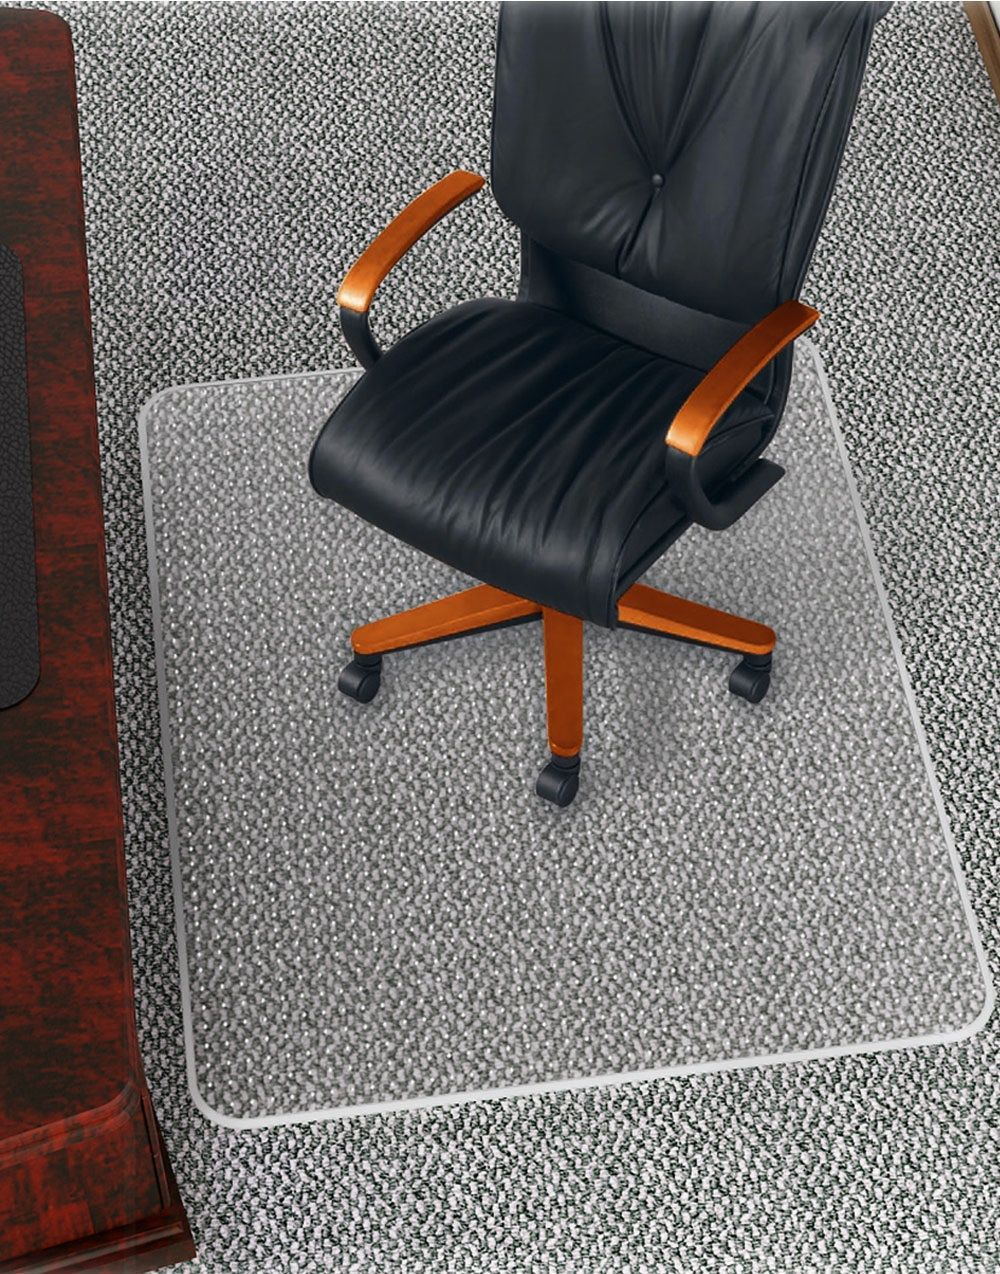 Floor mats for office chairs on carpet 2021 in 2020